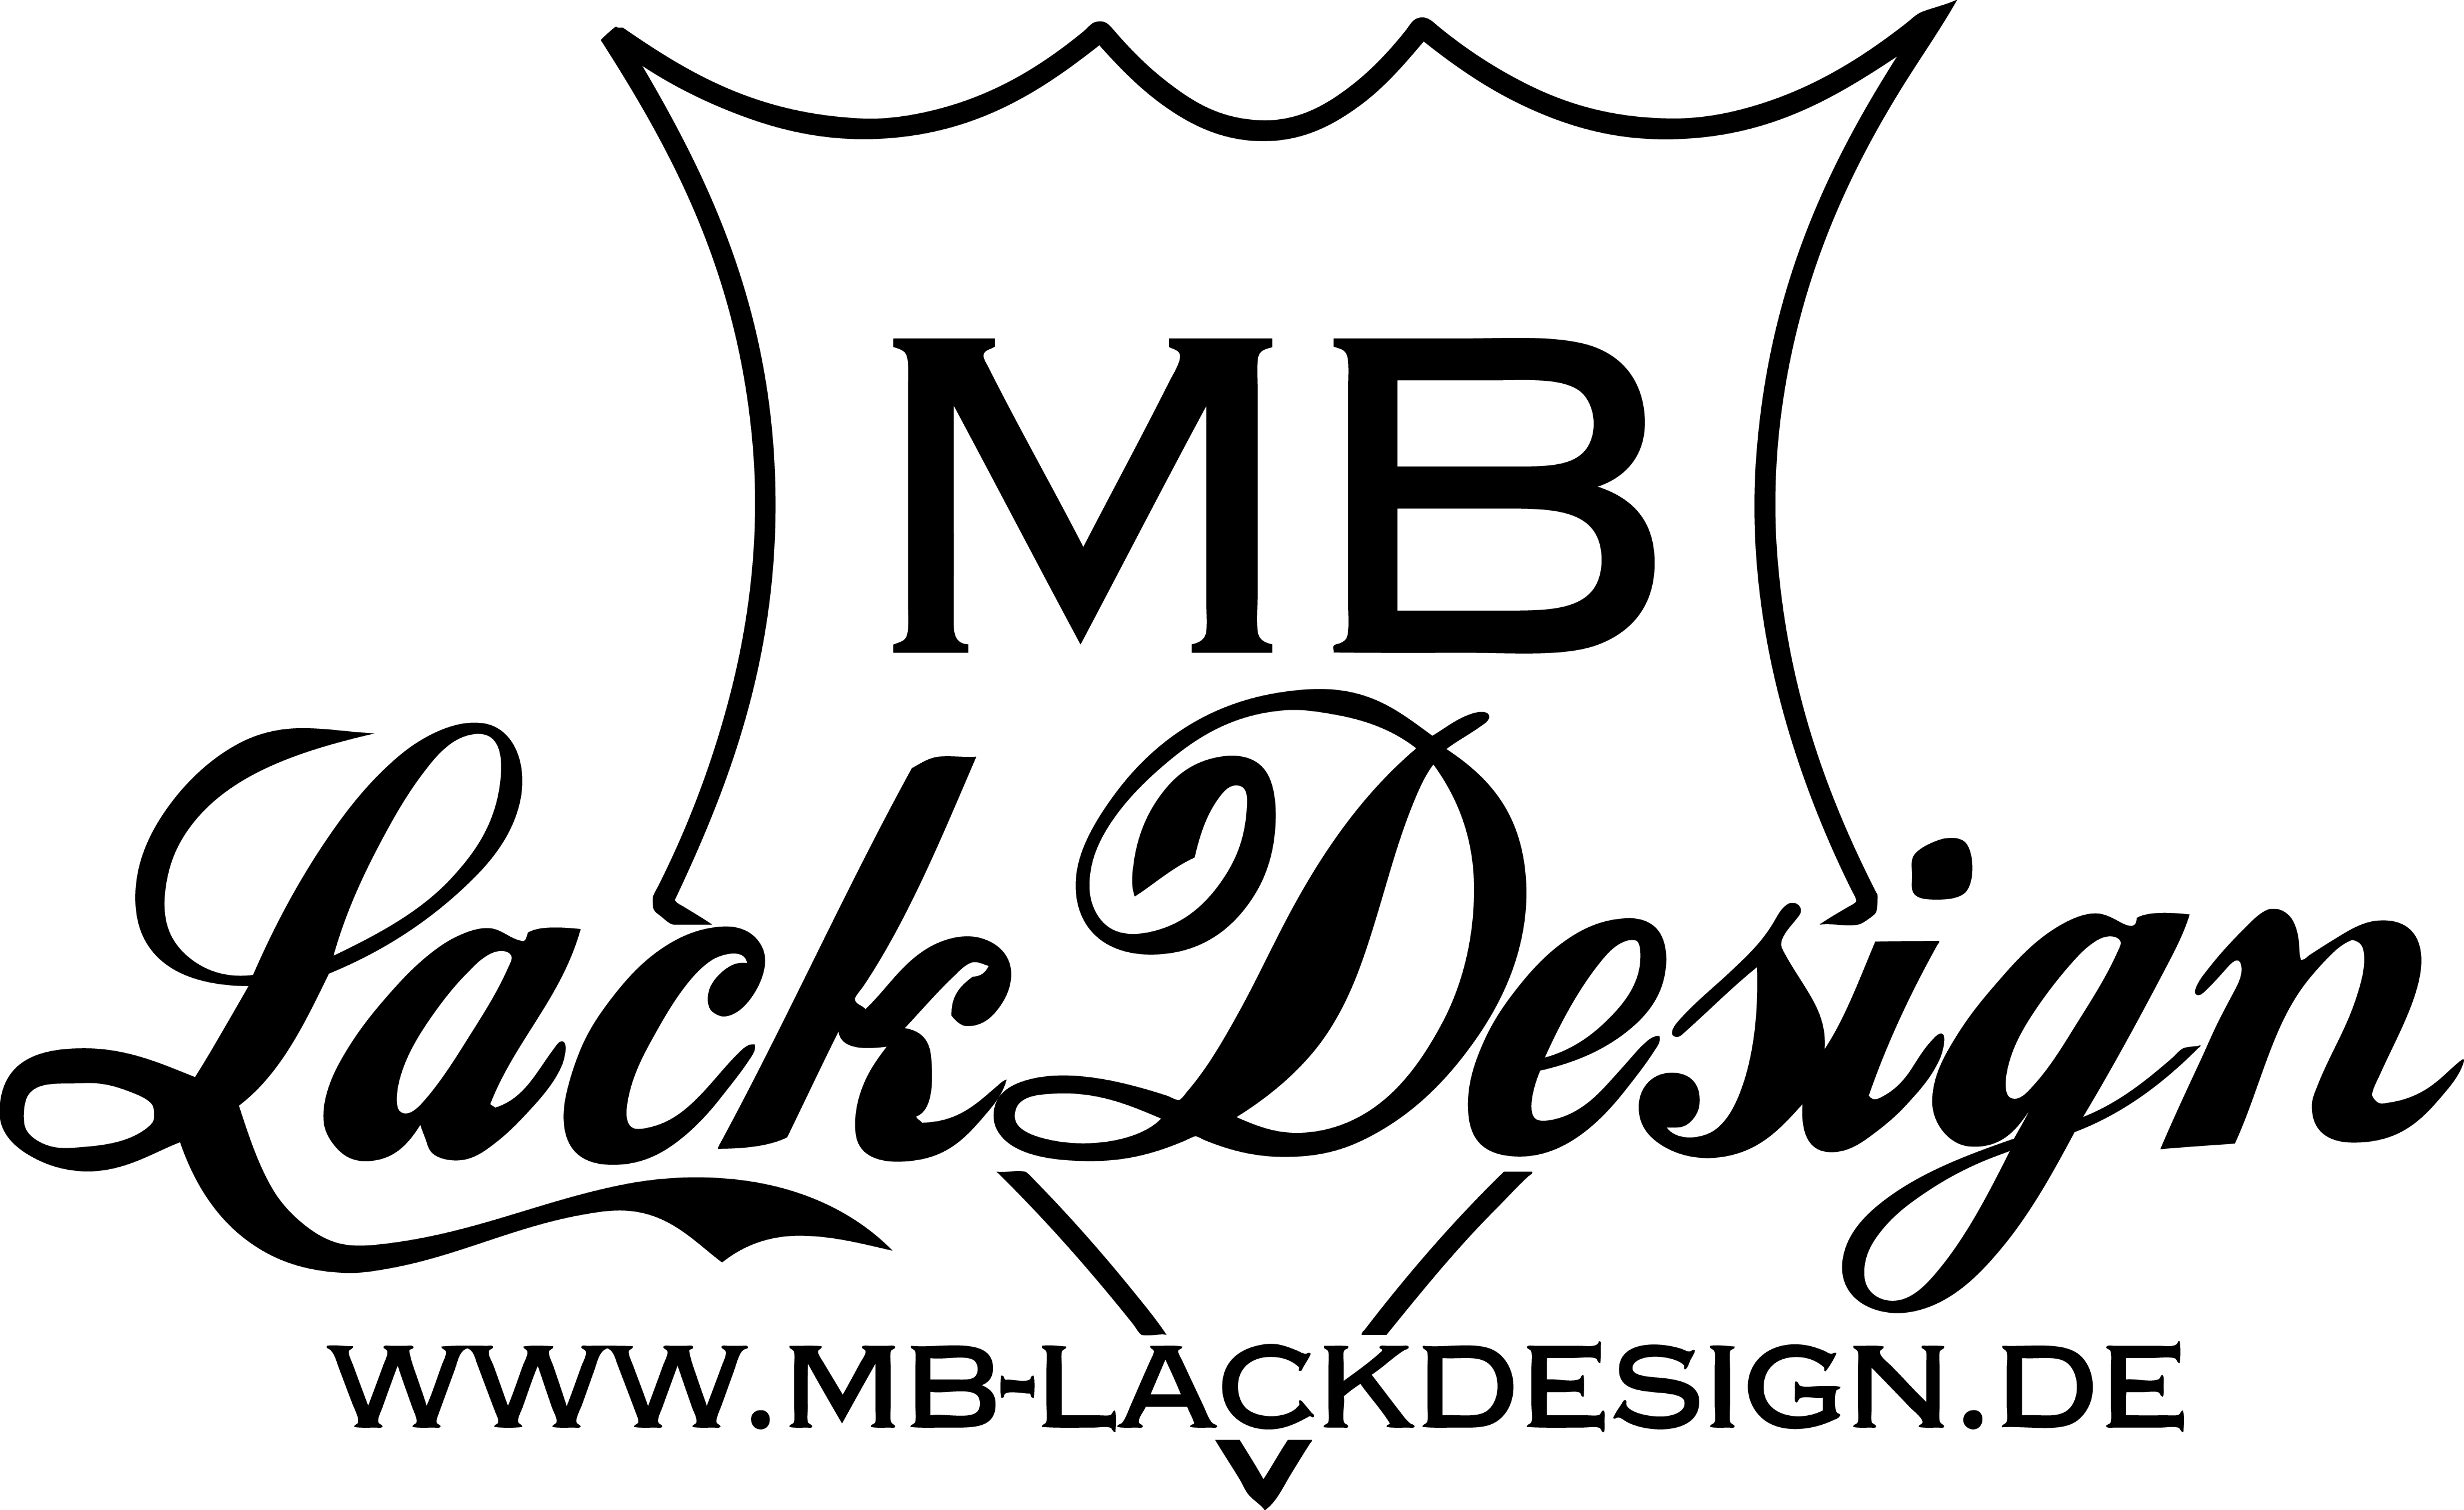 MB Lackdesign